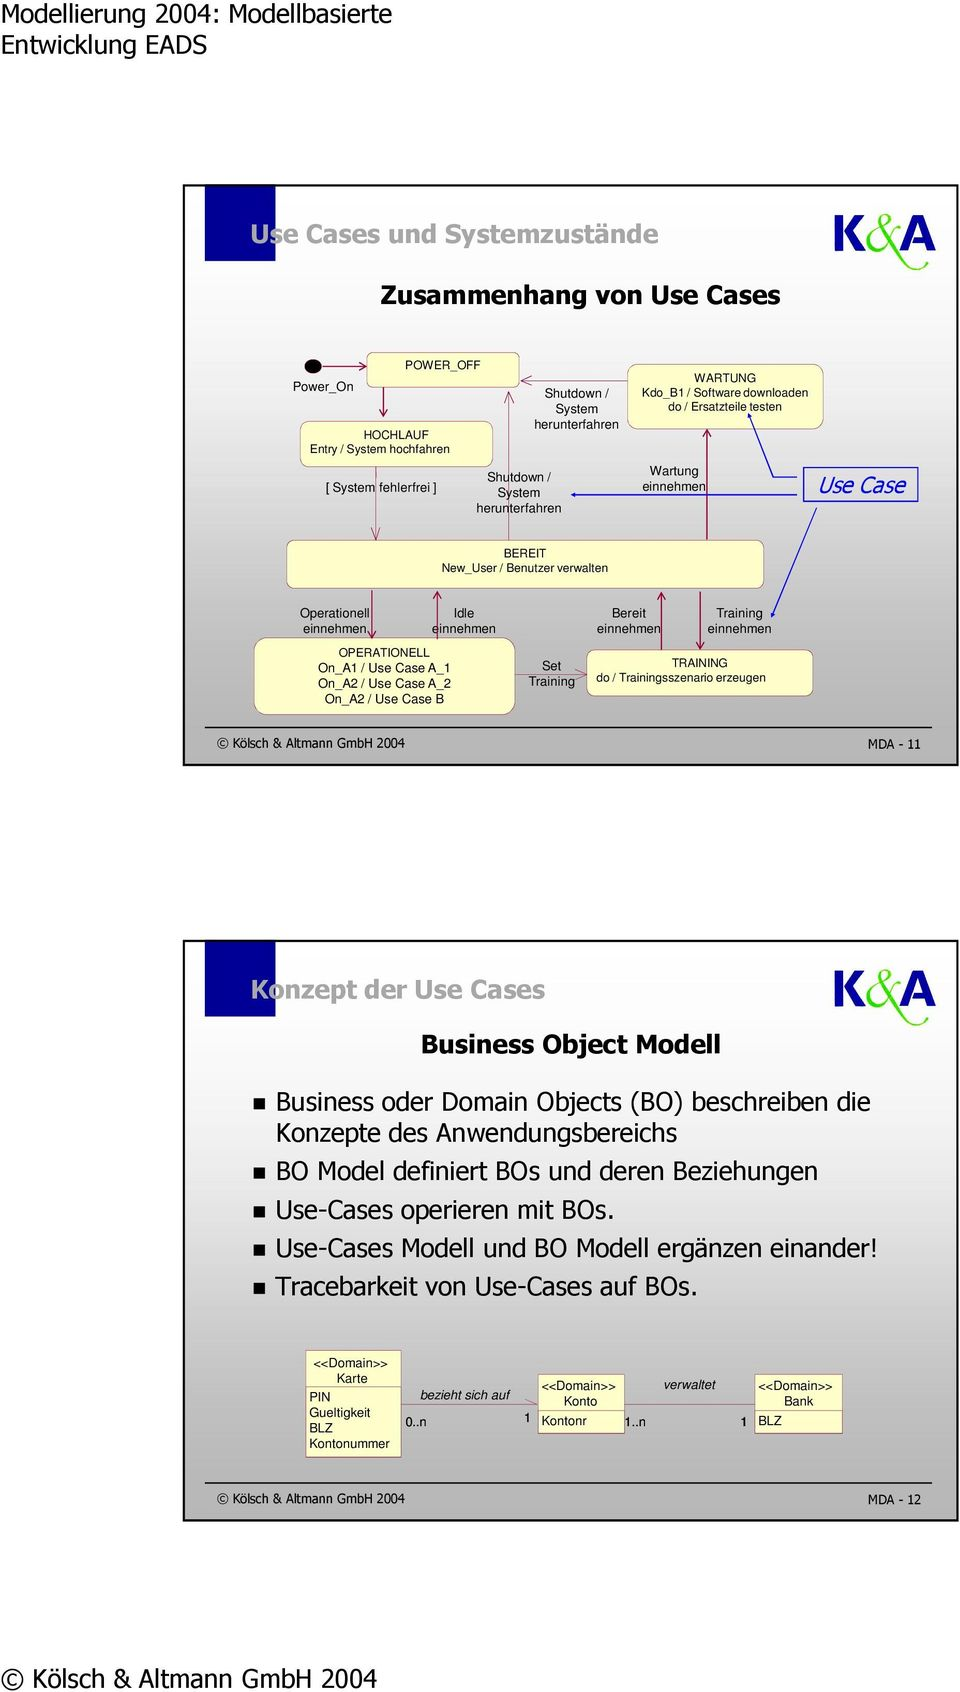 / Use Case A_1 On_A2 / Use Case A_2 On_A2 / Use Case B Idle einnehmen Set Training Bereit einnehmen Training einnehmen TRAINING do / Trainingsszenario erzeugen DA - 11 Konzept der Use Cases Business